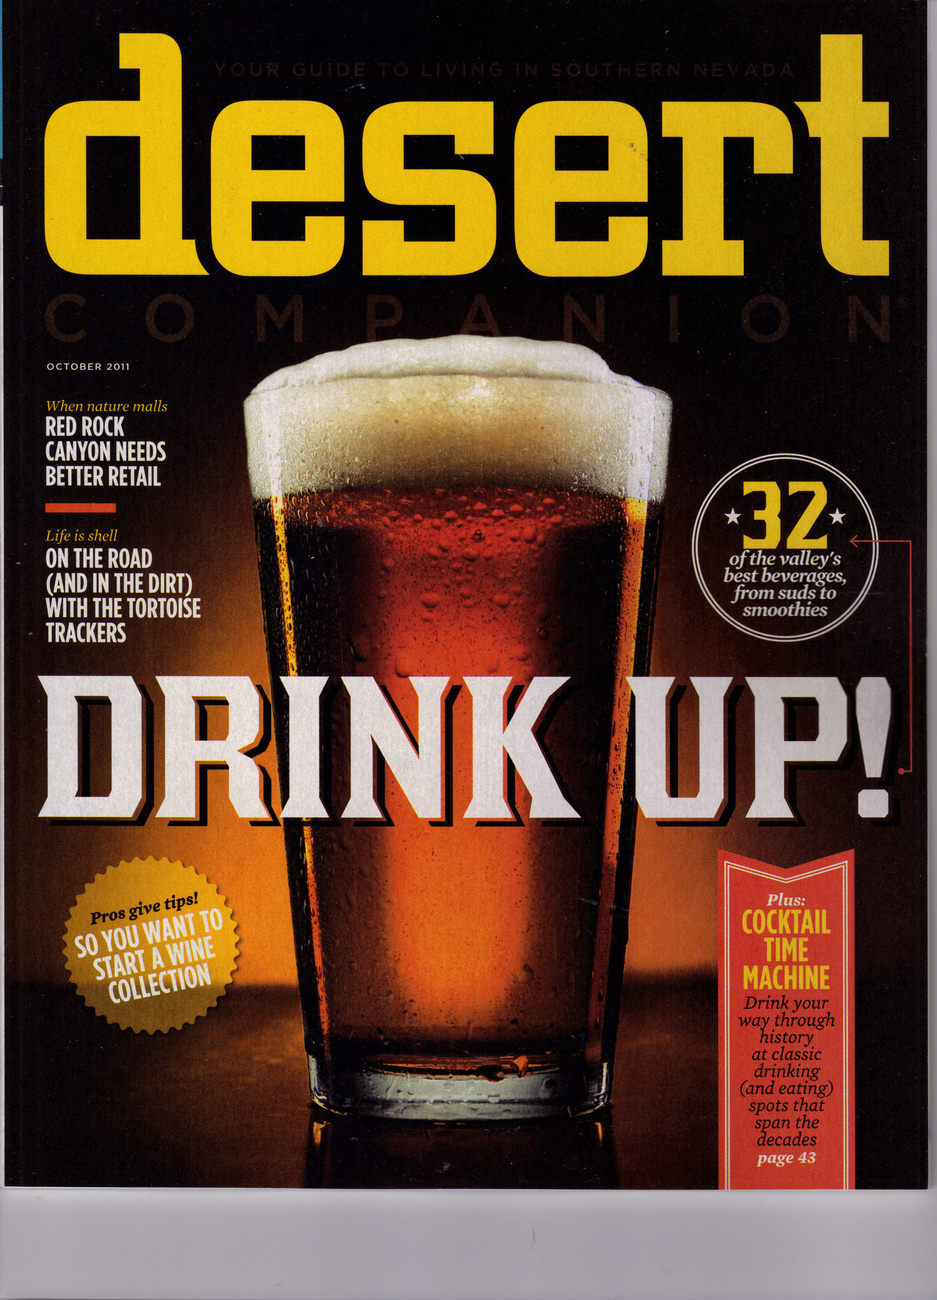 DRINK UP, KNIGHT VIPER TEAM @ DESERT CompanionLas Vegas Mag OCTOBER 2011